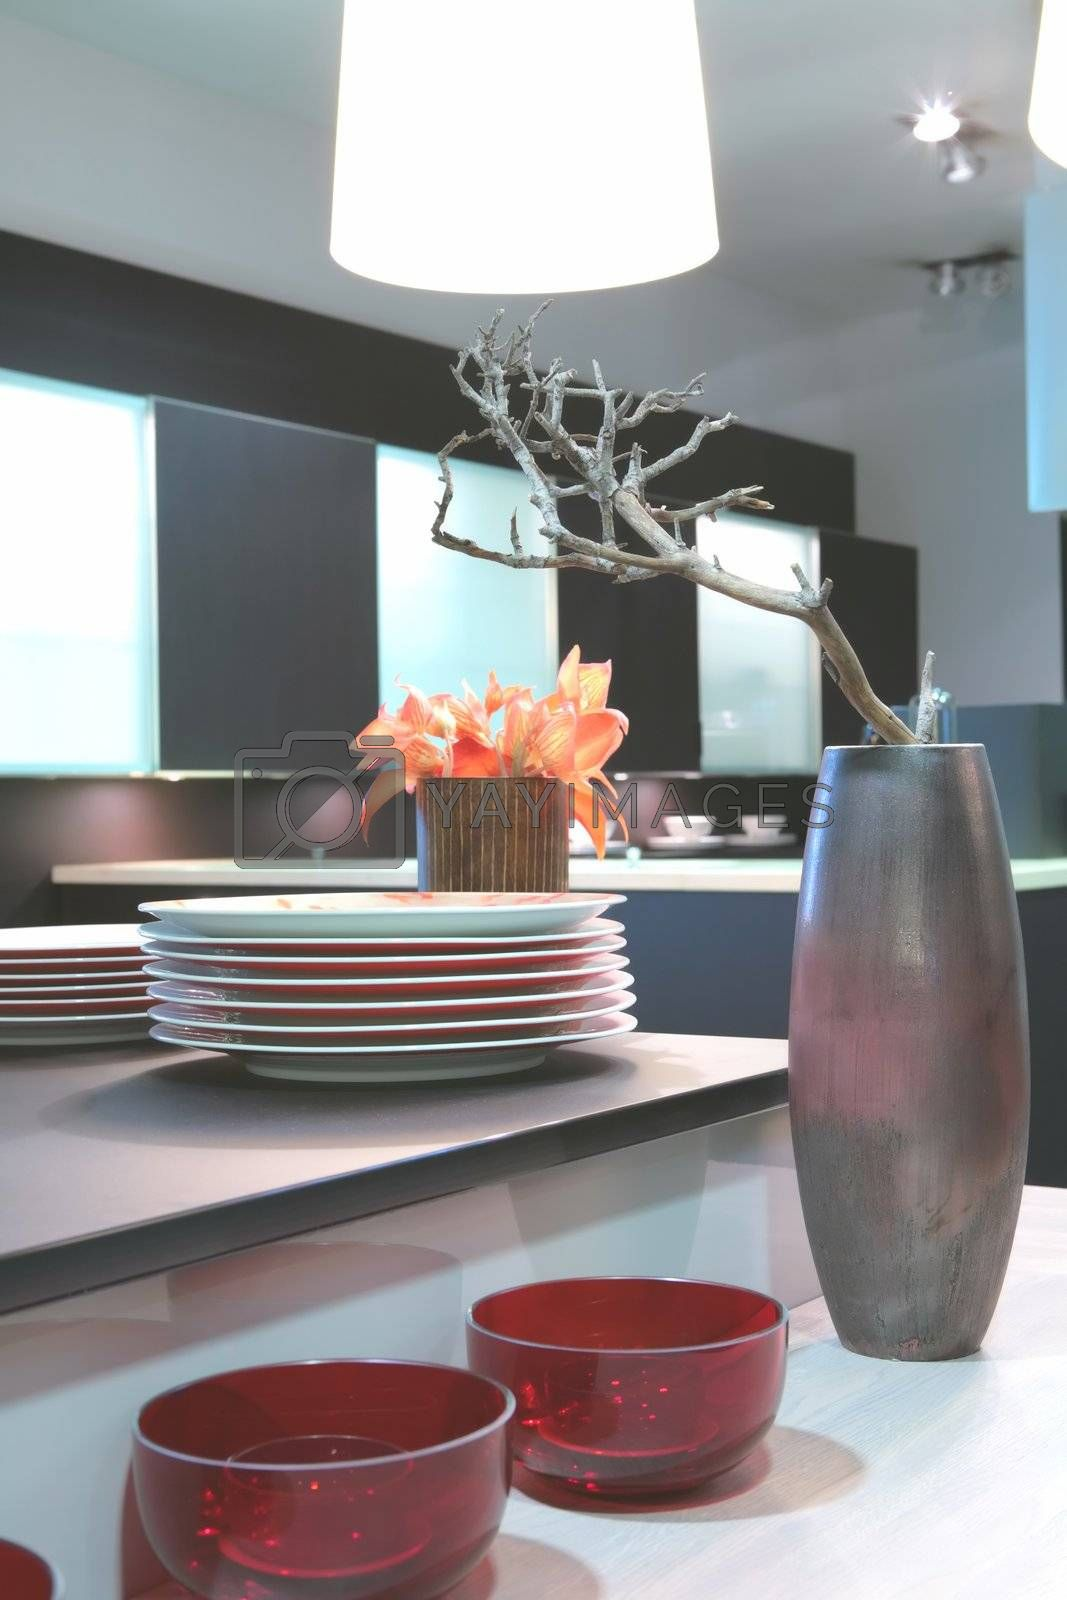 kitchen table with dishes by Astroid